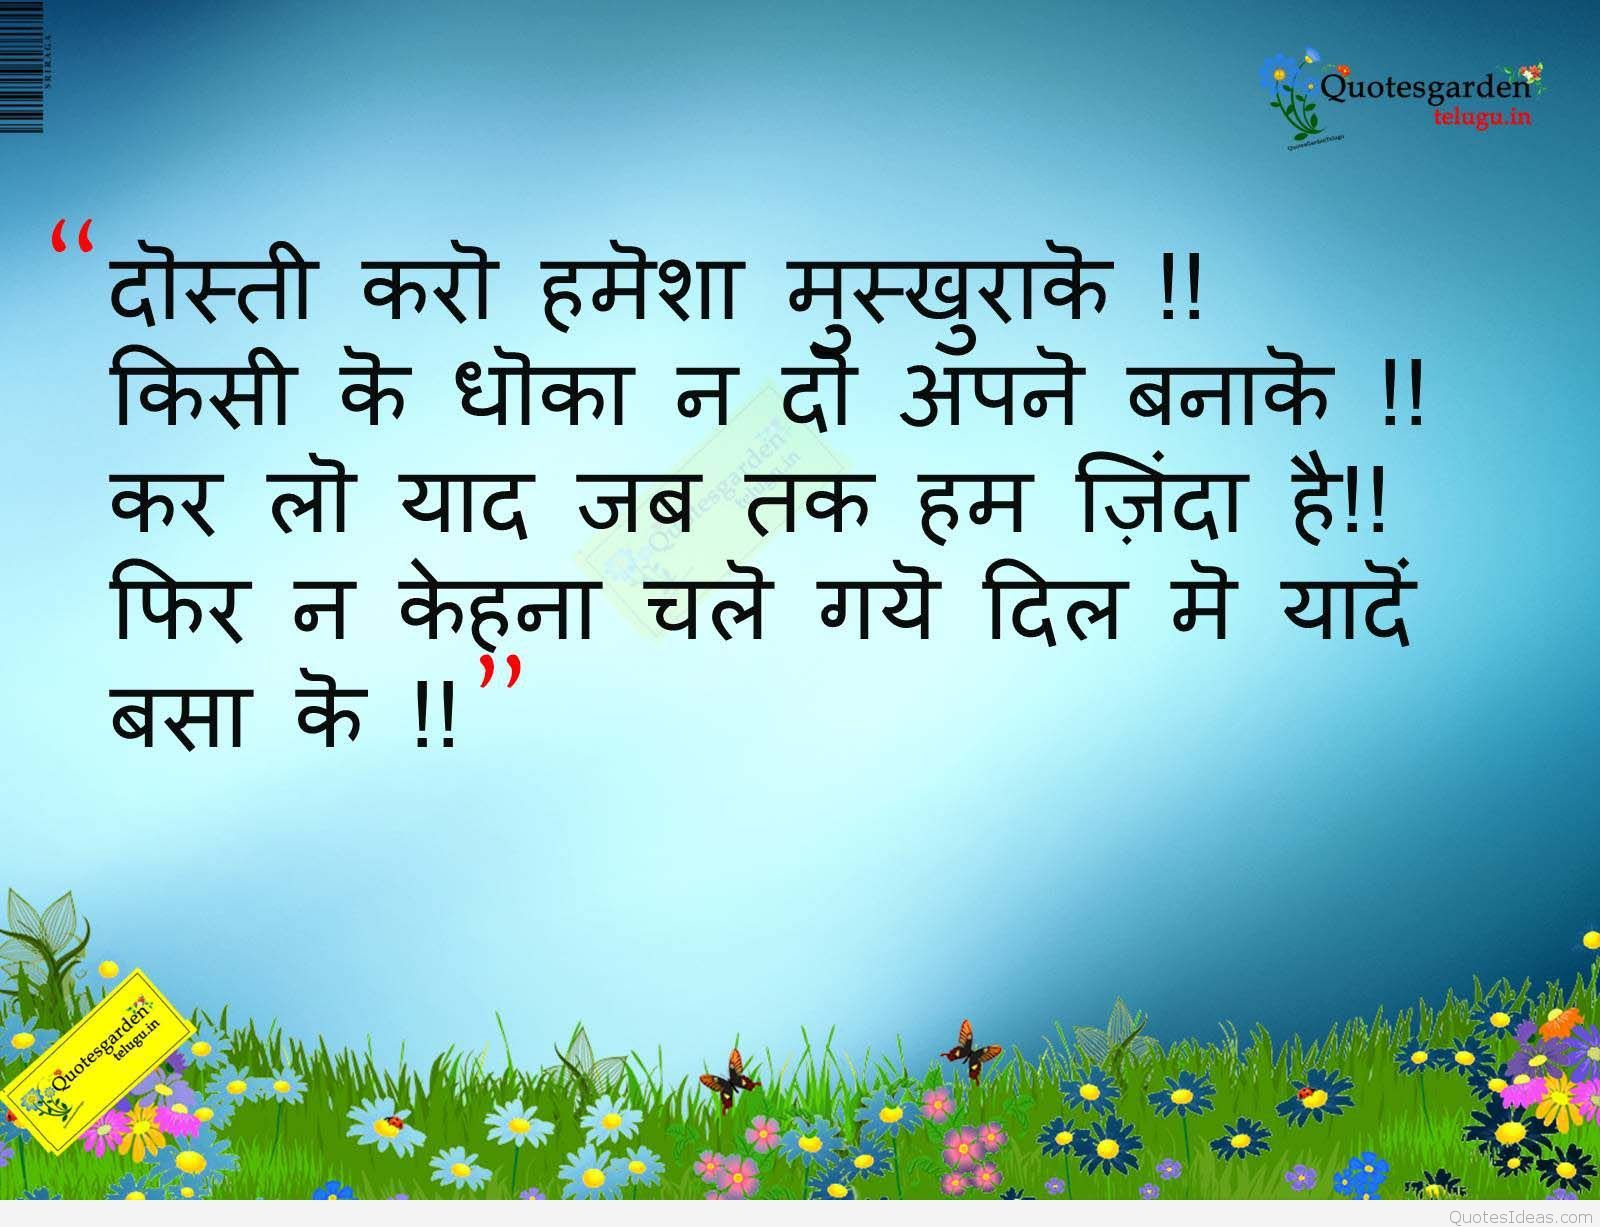 Top  Hindi Love Quotes Sayings Images Wallpapers Hd